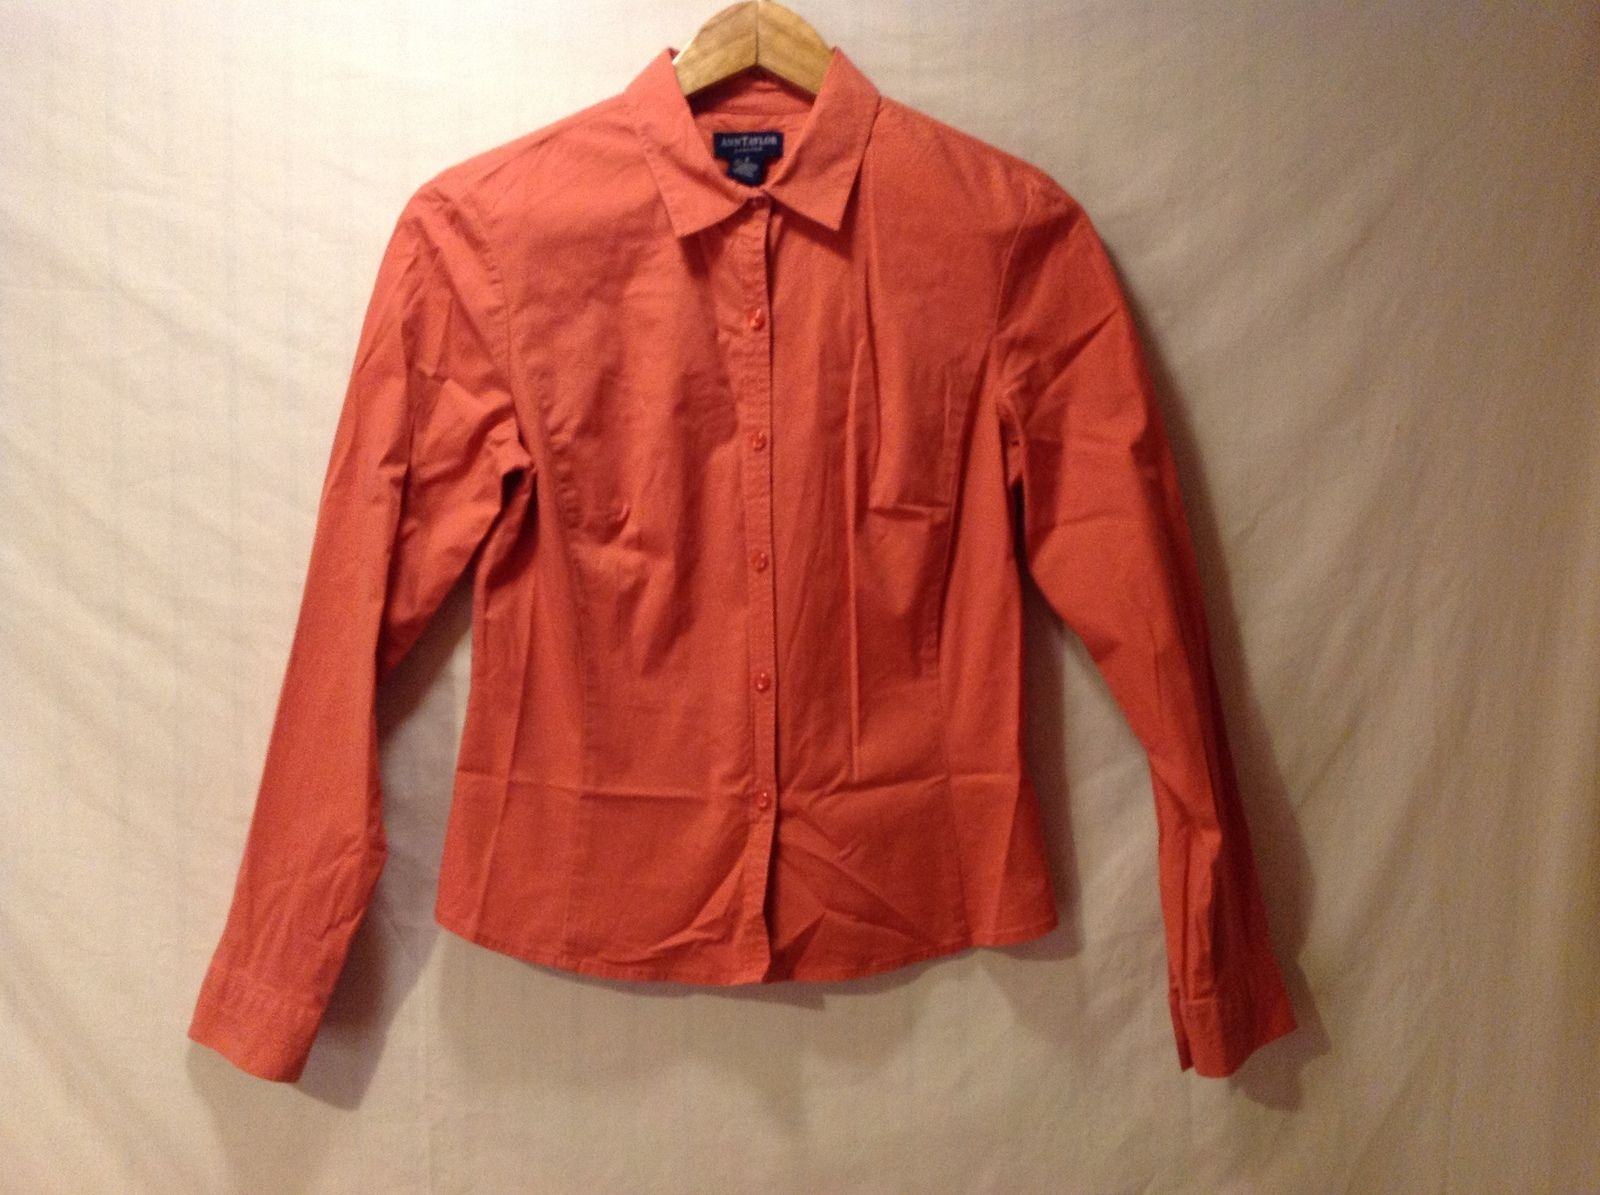 Ann Taylor Woman's Salmon Colored Collared Blouse Size 6